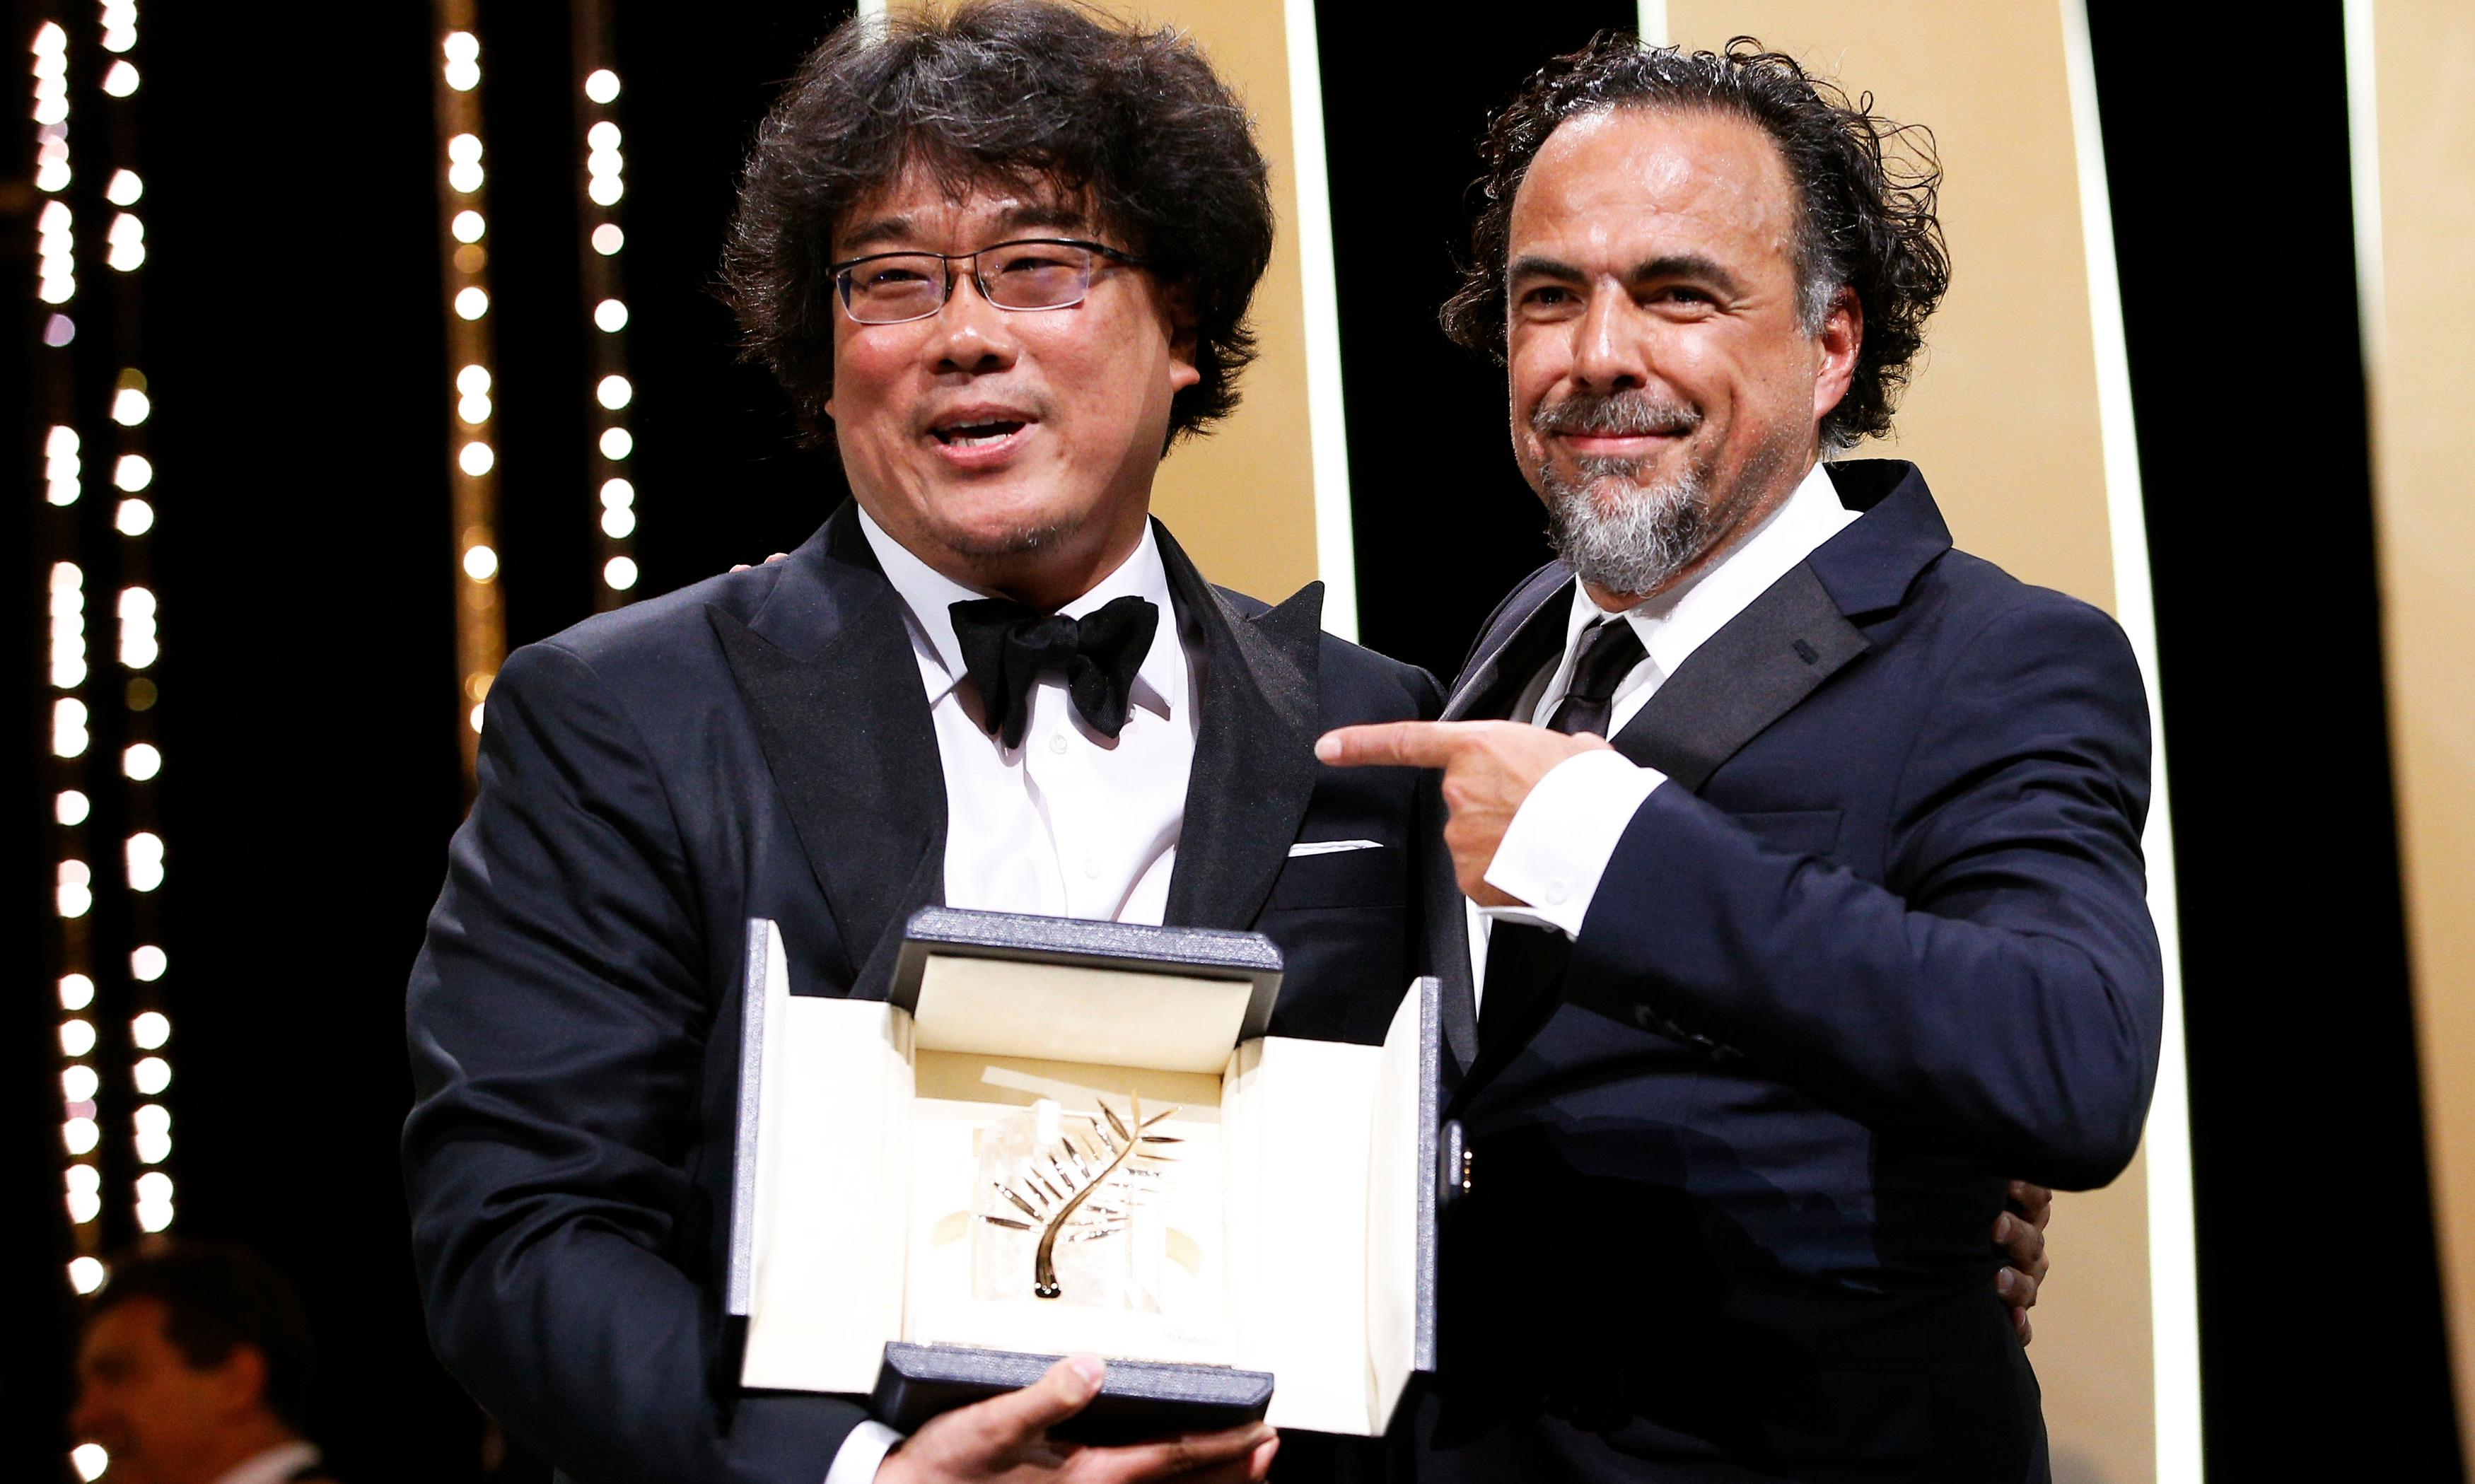 Sorry they missed you, Tarantino – but Cannes was right to celebrate Parasite